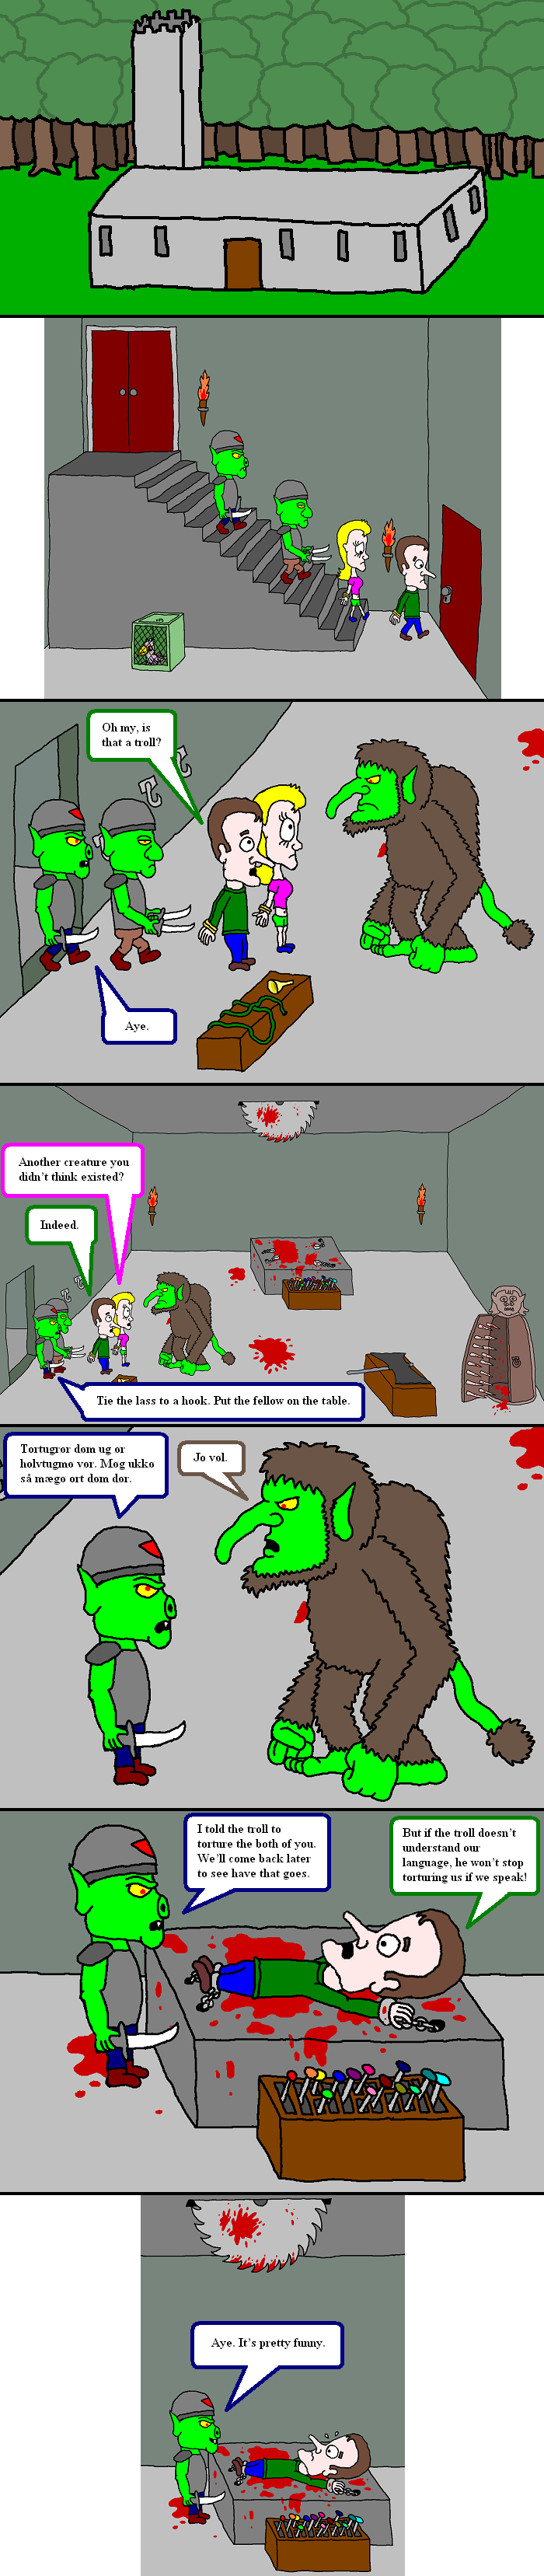 Troll and torture